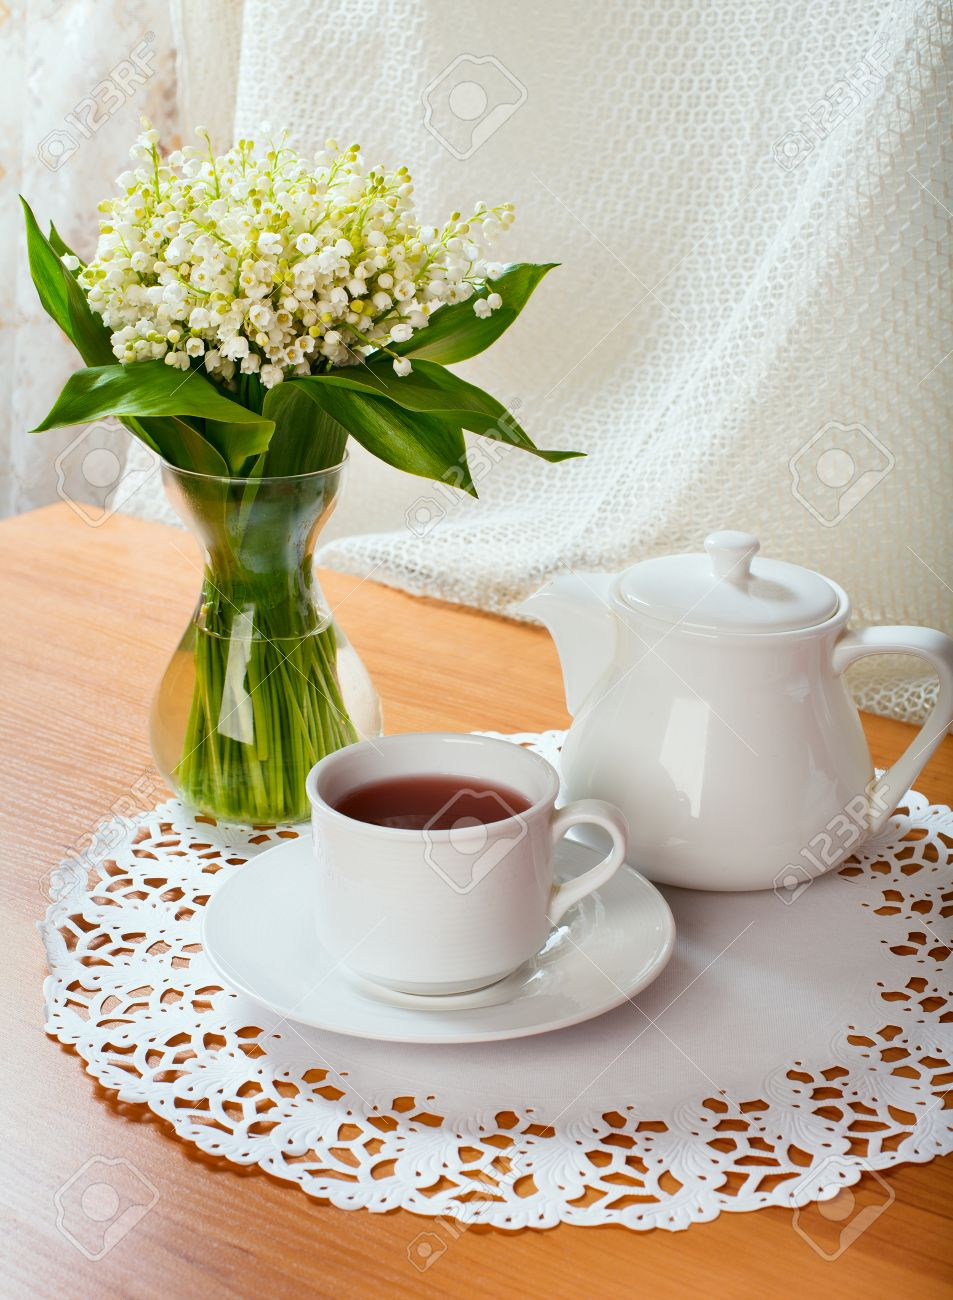 morning tea table setting with Lily of the valley flowers Stock Photo - 28426120 & Morning Tea Table Setting With Lily Of The Valley Flowers Stock ...